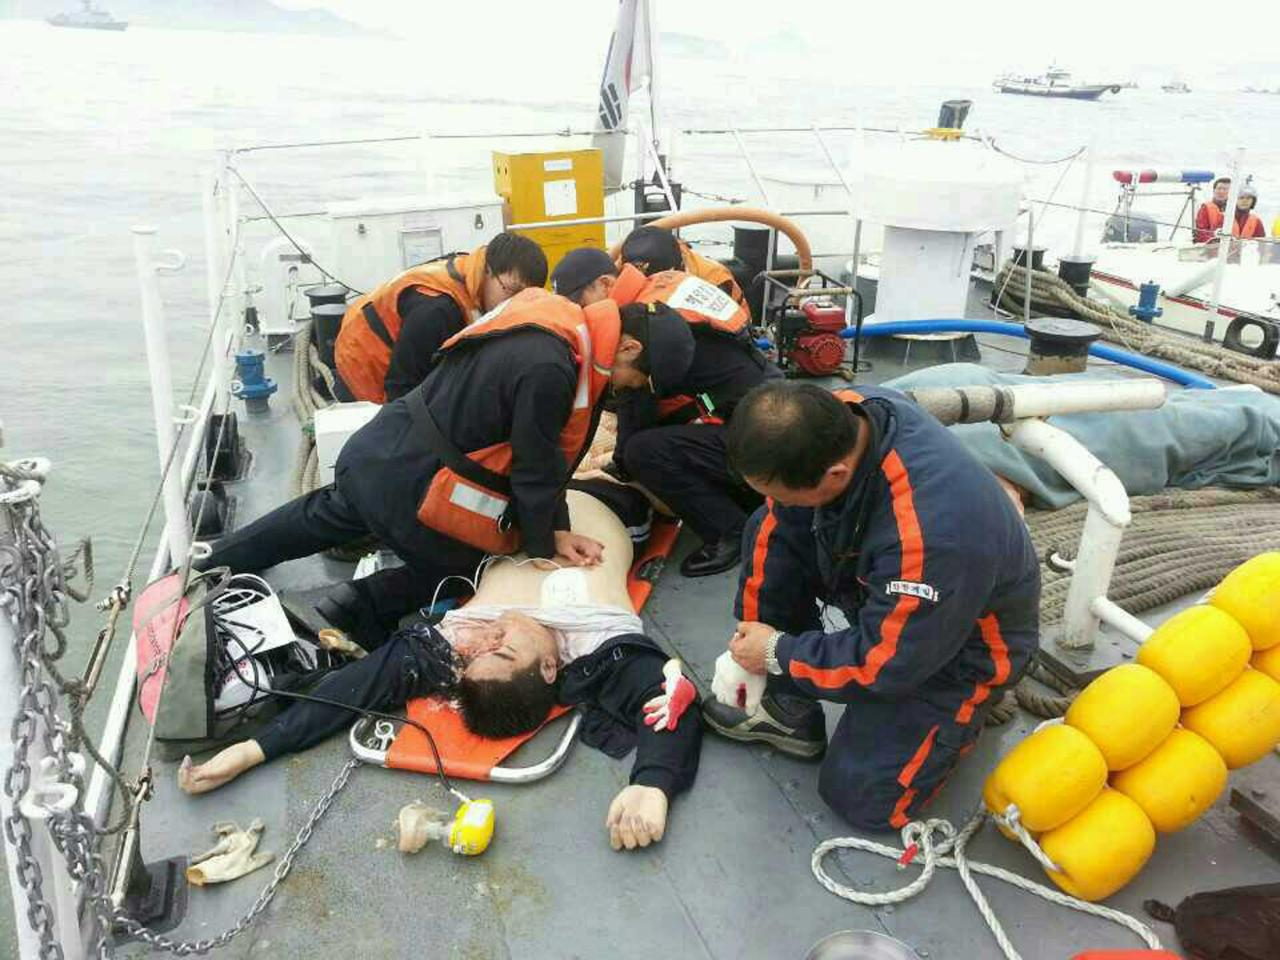 ATTENTION EDITORS - VISUAL COVERAGE OF SCENES OF INJURY OR DEATH An injured passenger who was on a sinking ship, is rescued by South Korean maritime policemen, in the sea off Jindo April 16, 2014 in this picture provided by West Regional Headquarters Korea Coast Guard and released by News1. One person has been found dead in a South Korean ferry that is sinking off the southwest coast, a coast guard official said on Wednesday. The ferry, identified as the Sewol, was carrying about 470 passengers, including 338 high school students and teachers, en route to Jeju island, about 100 km (60 miles) south of the Korean peninsula. REUTERS/West Regional Headquarters Korea Coast Guard/News1 (SOUTH KOREADISASTER LAW - Tags: DISASTER MARITIME CRIME LAW TPX IMAGES OF THE DAY) ATTENTION EDITORS - THIS IMAGE WAS PROVIDED BY A THIRD PARTY. FOR EDITORIAL USE ONLY. NOT FOR SALE FOR MARKETING OR ADVERTISING CAMPAIGNS. THIS PICTURE IS DISTRIBUTED EXACTLY AS RECEIVED BY REUTERS, AS A SERVICE TO CLIENTS. NO SALES. NO ARCHIVES. SOUTH KOREA OUT. NO COMMERCIAL OR EDITORIAL SALES IN SOUTH KOREA